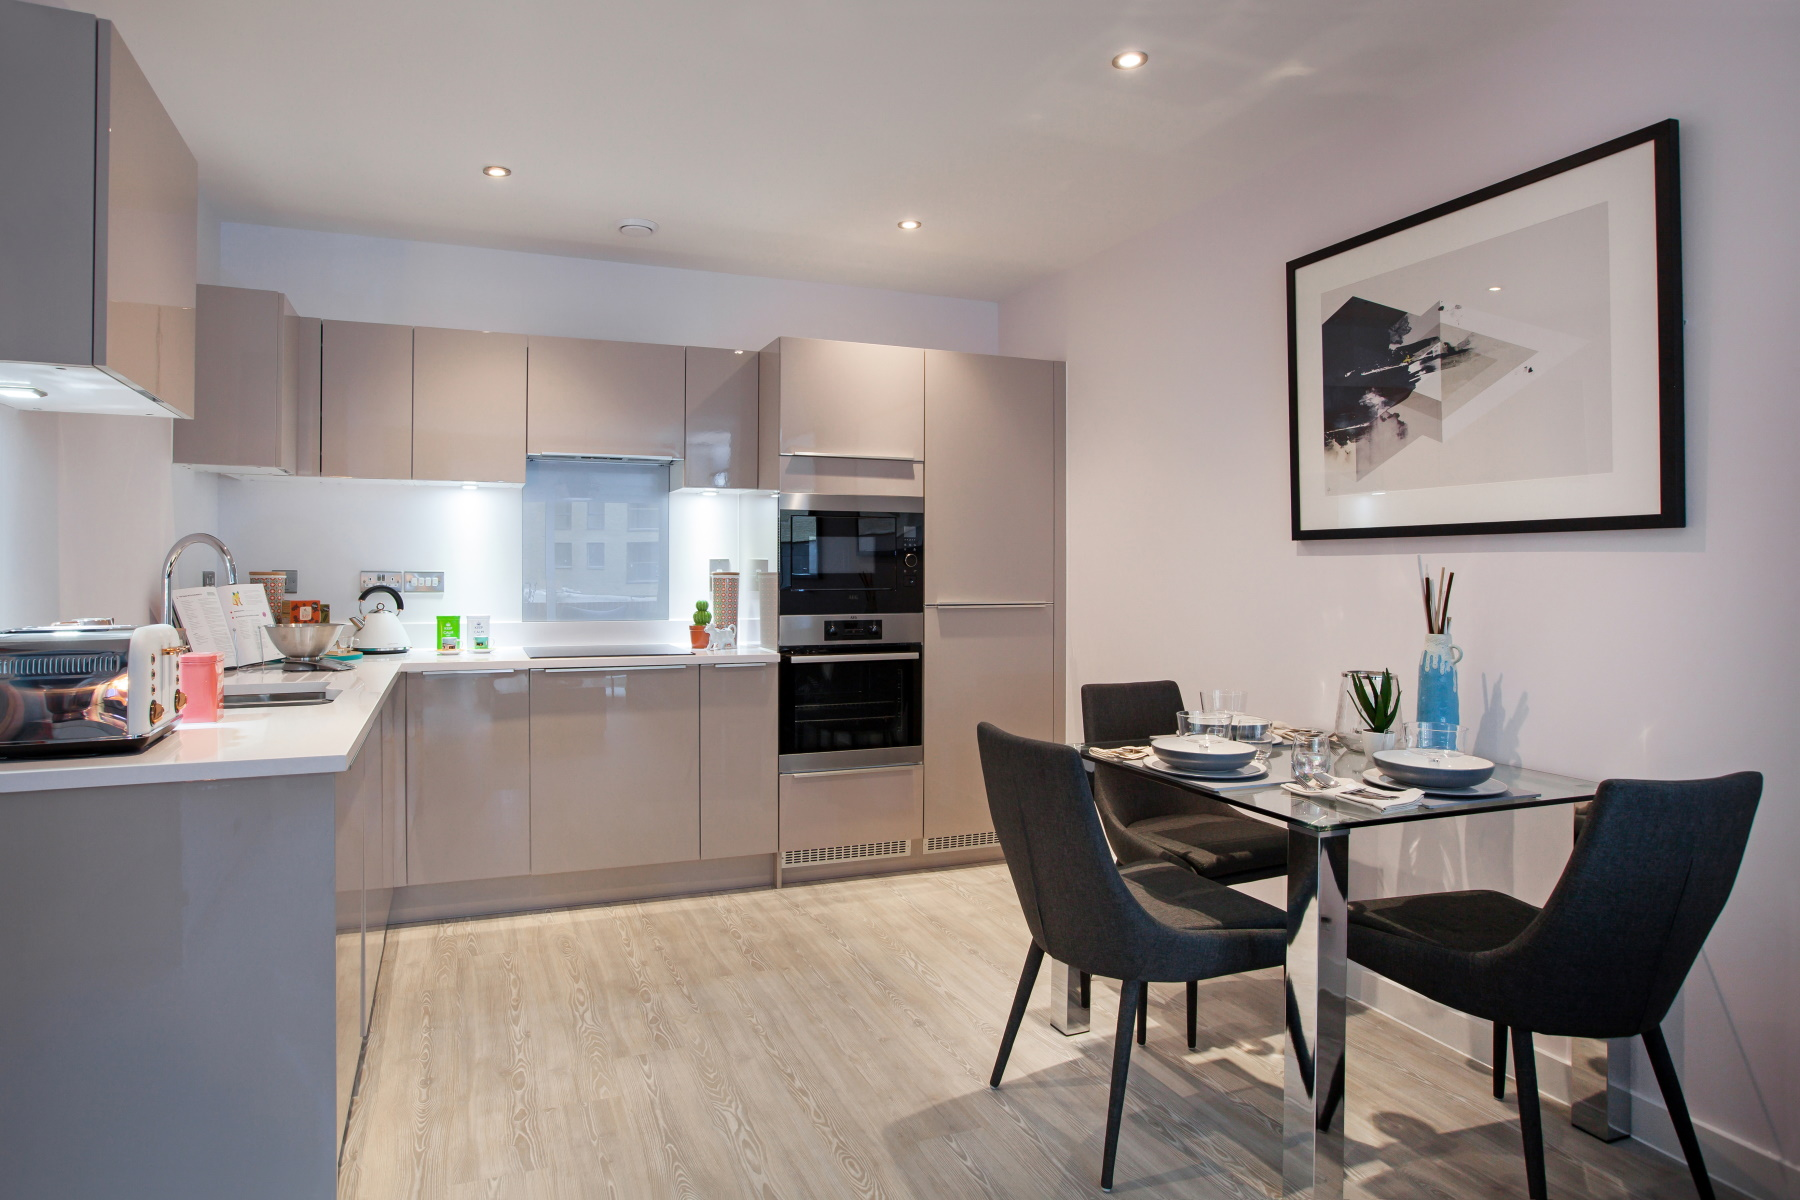 TW Exeter - Mountbatten Mews - Oaklea House example kitchen 2